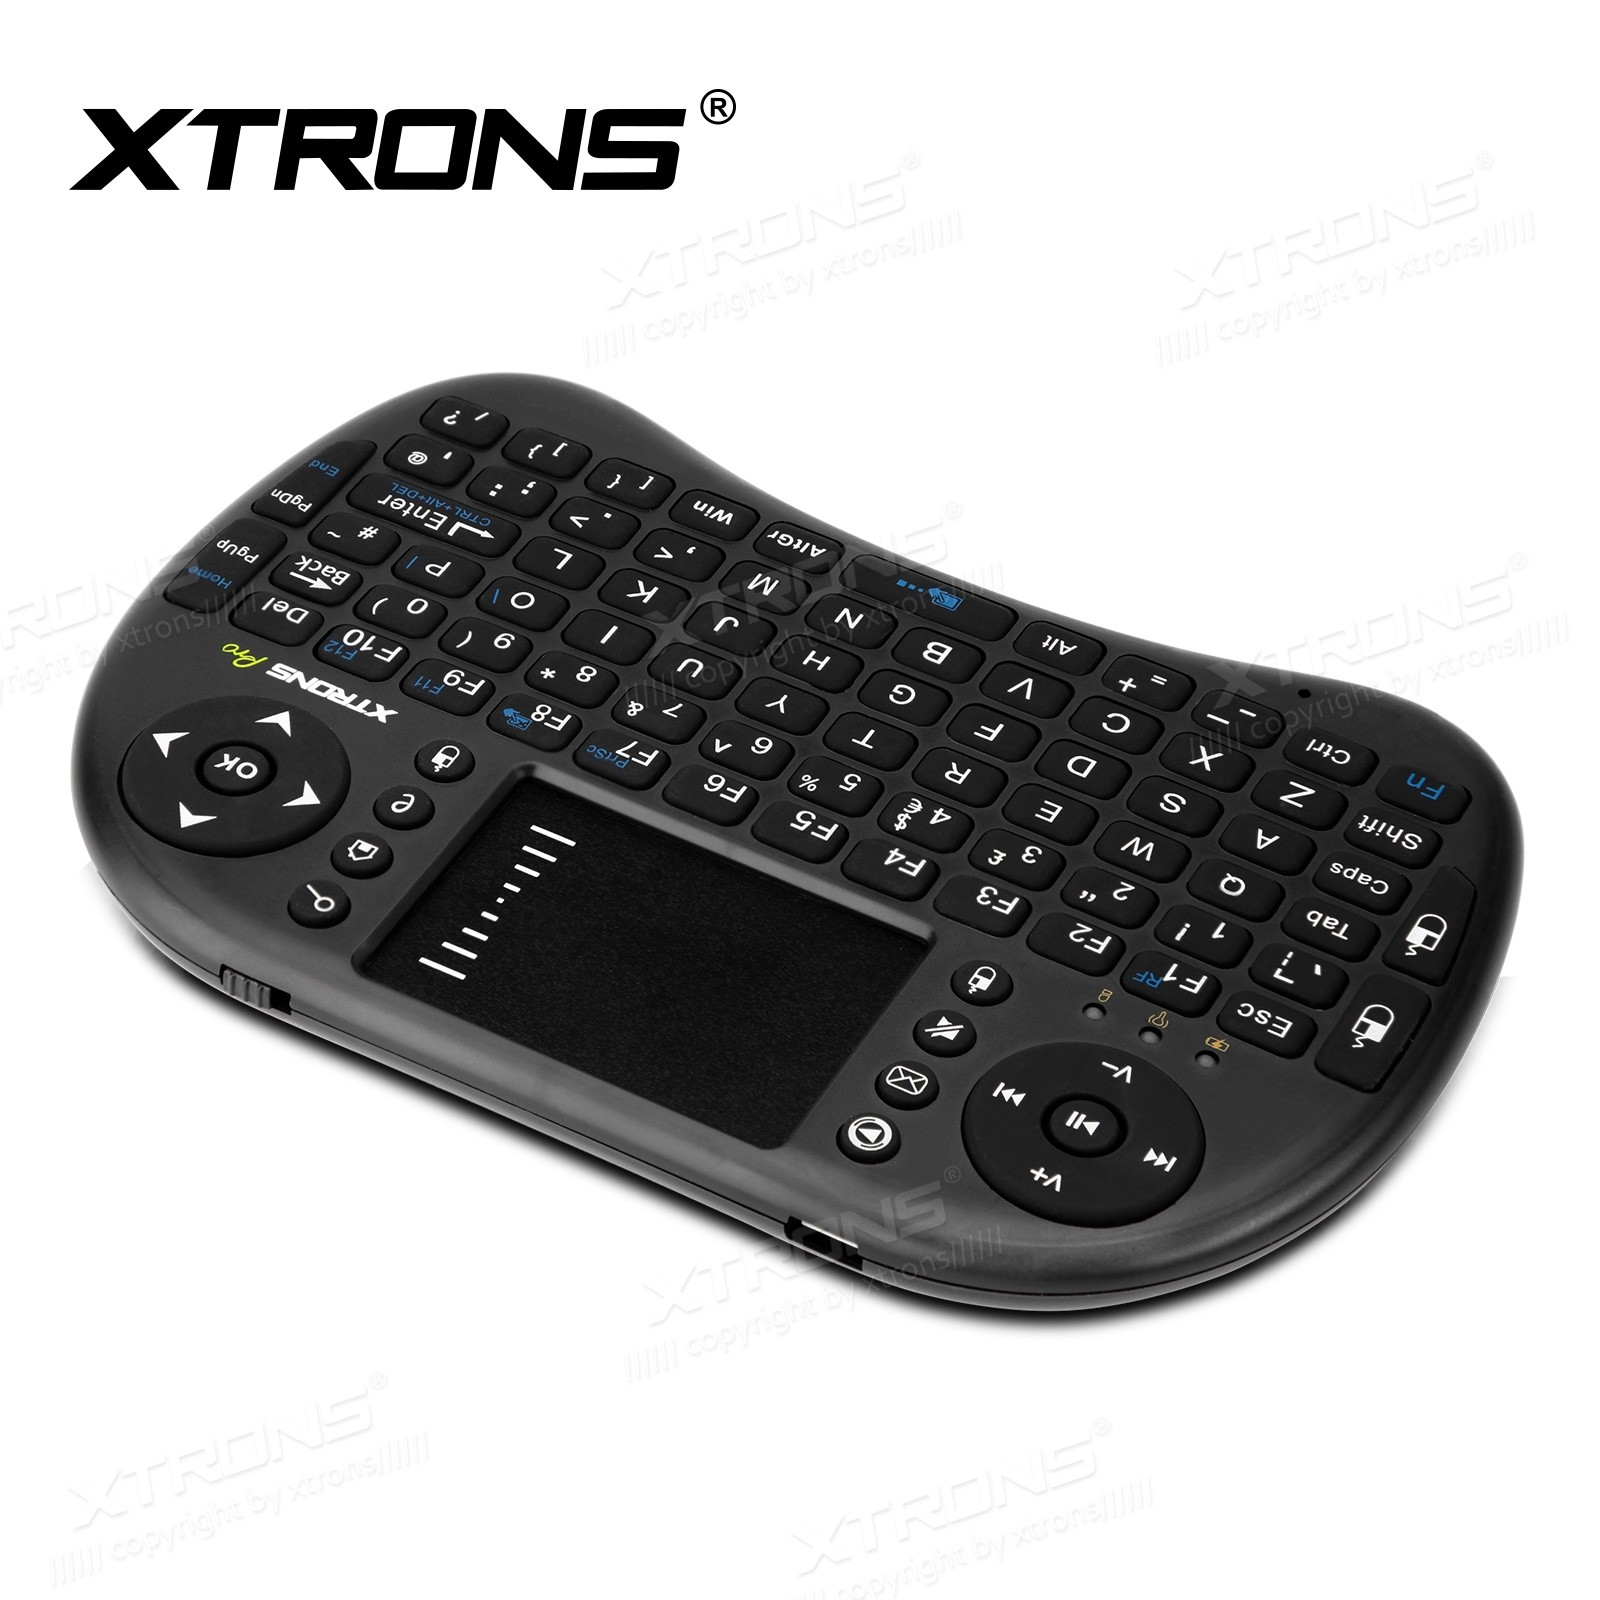 2.4GHz Wireless Mini Keyboard Mouse Touchpad